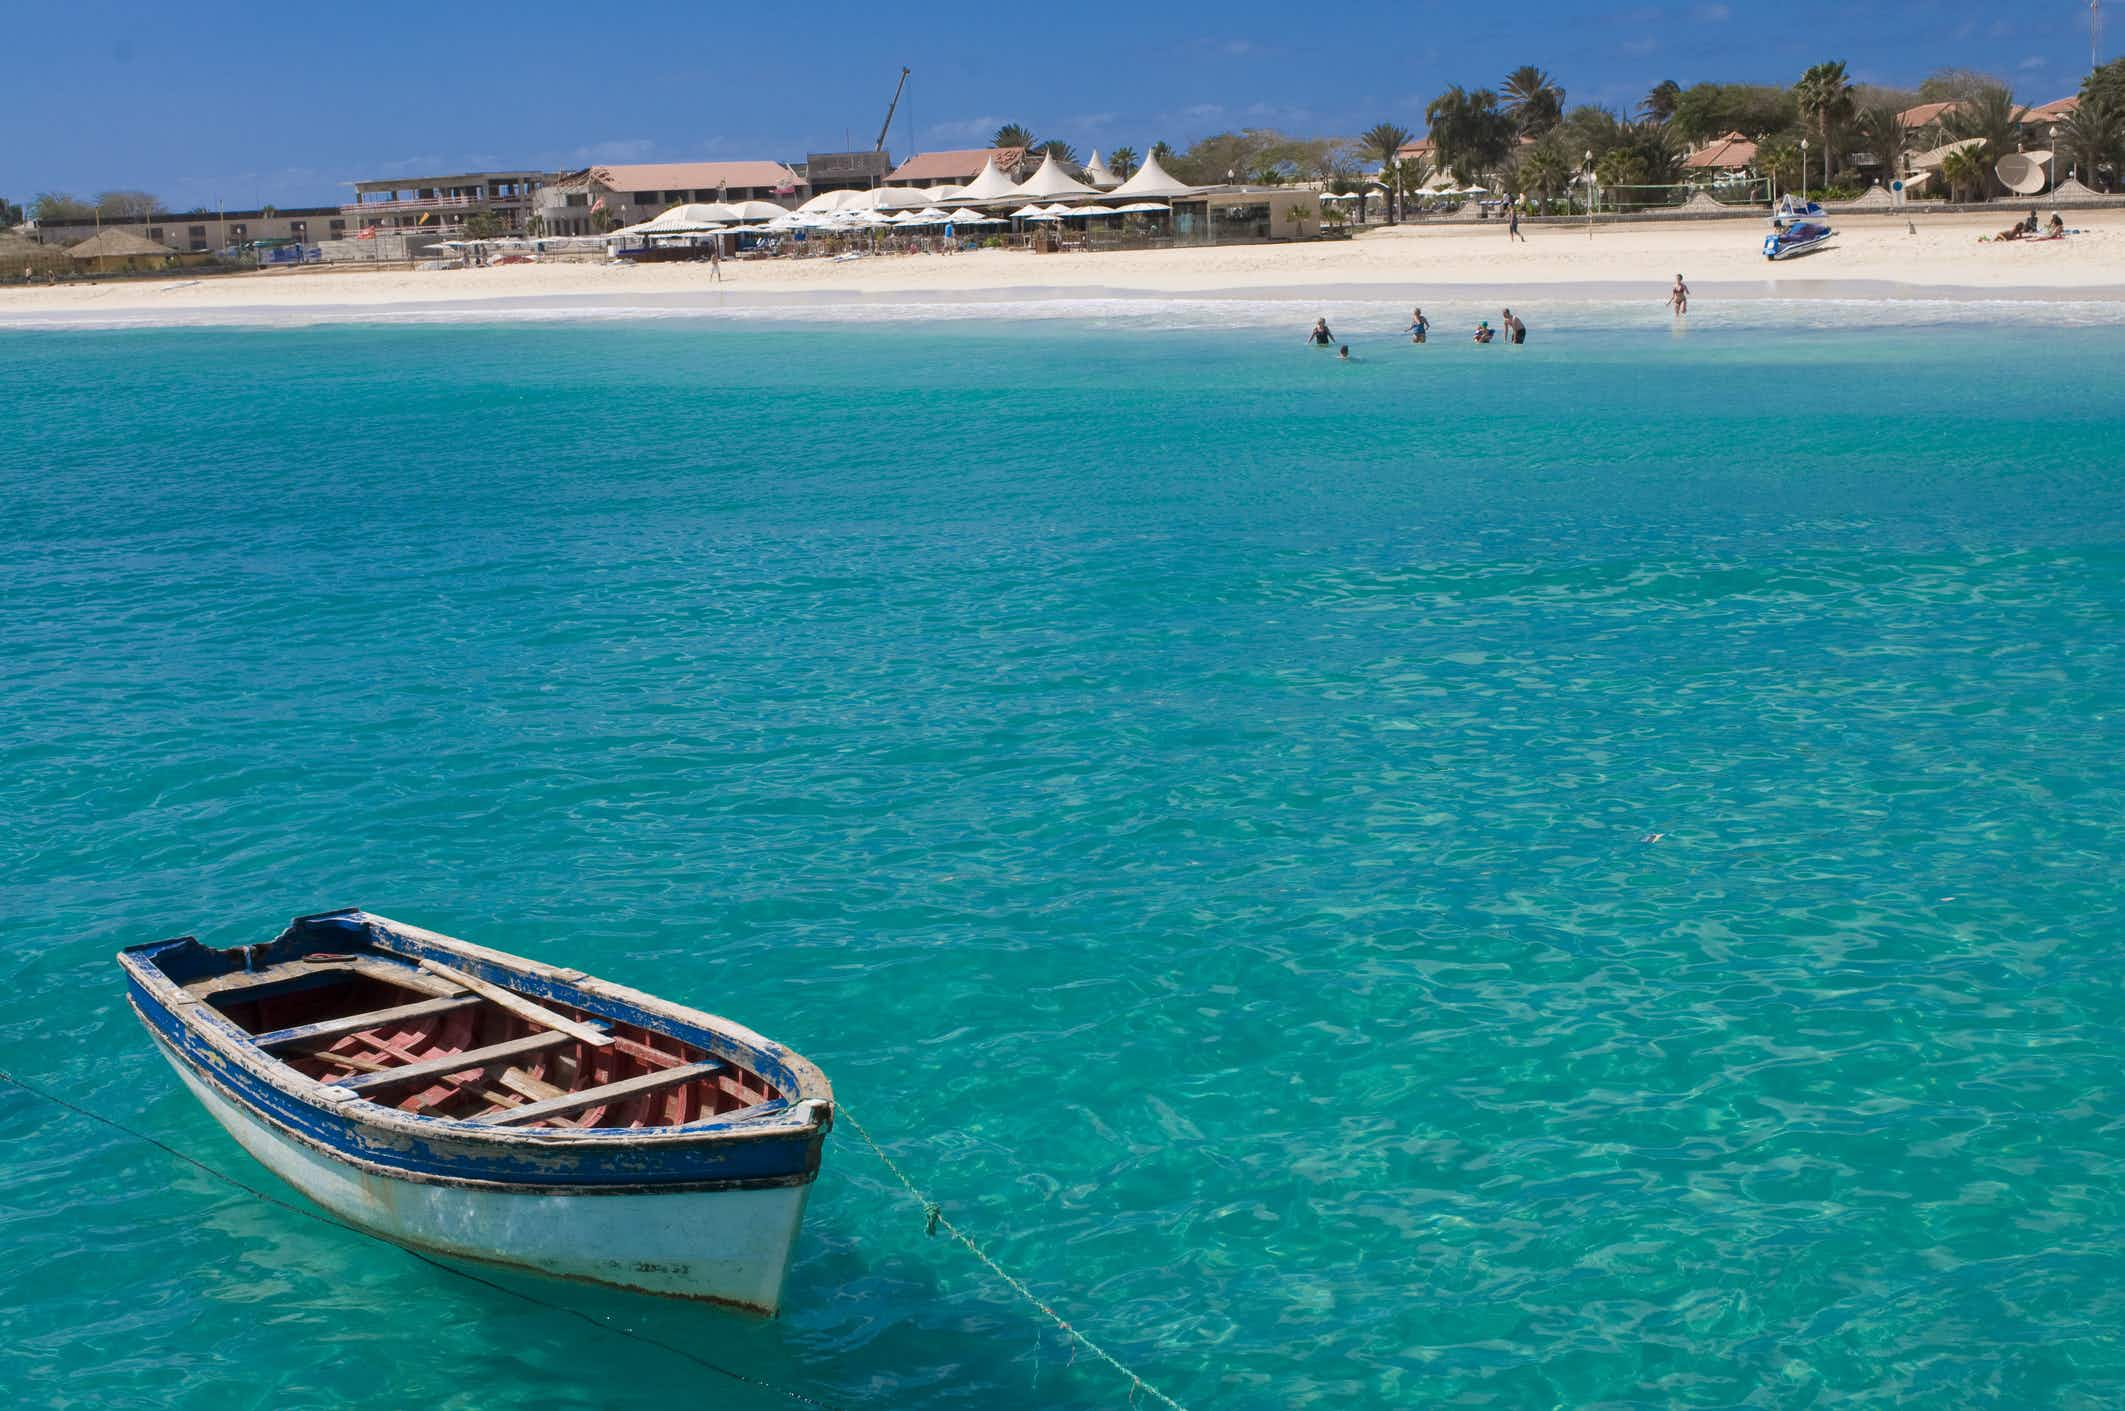 Cabo Verde aims to be fully powered by renewable energy within eight years